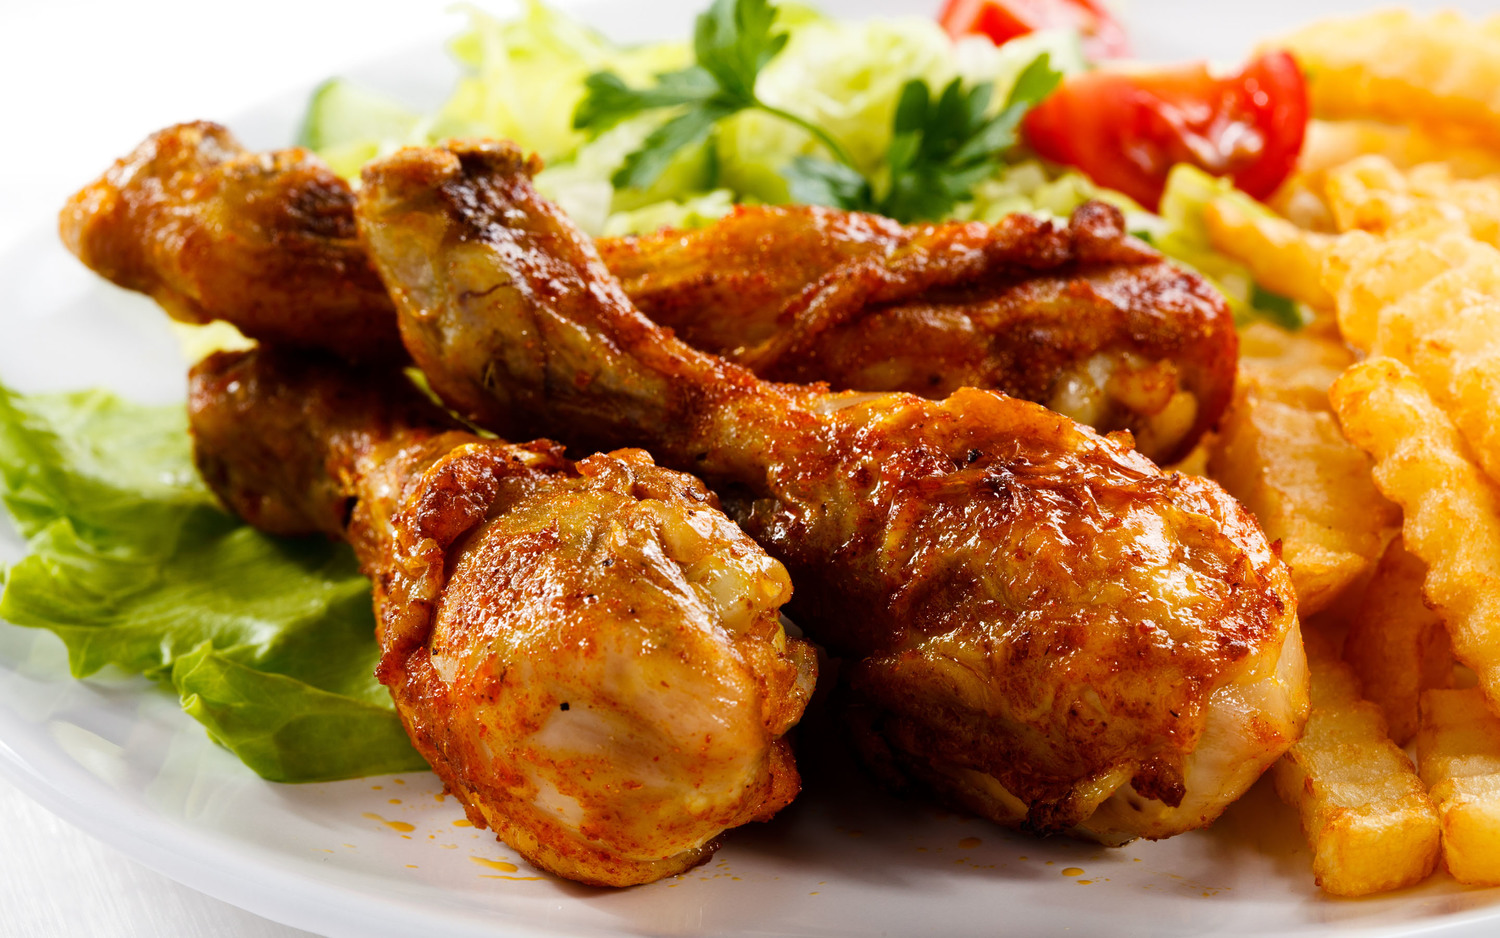 Creating Premium Chicken Products At A Low Cost Design Food Group